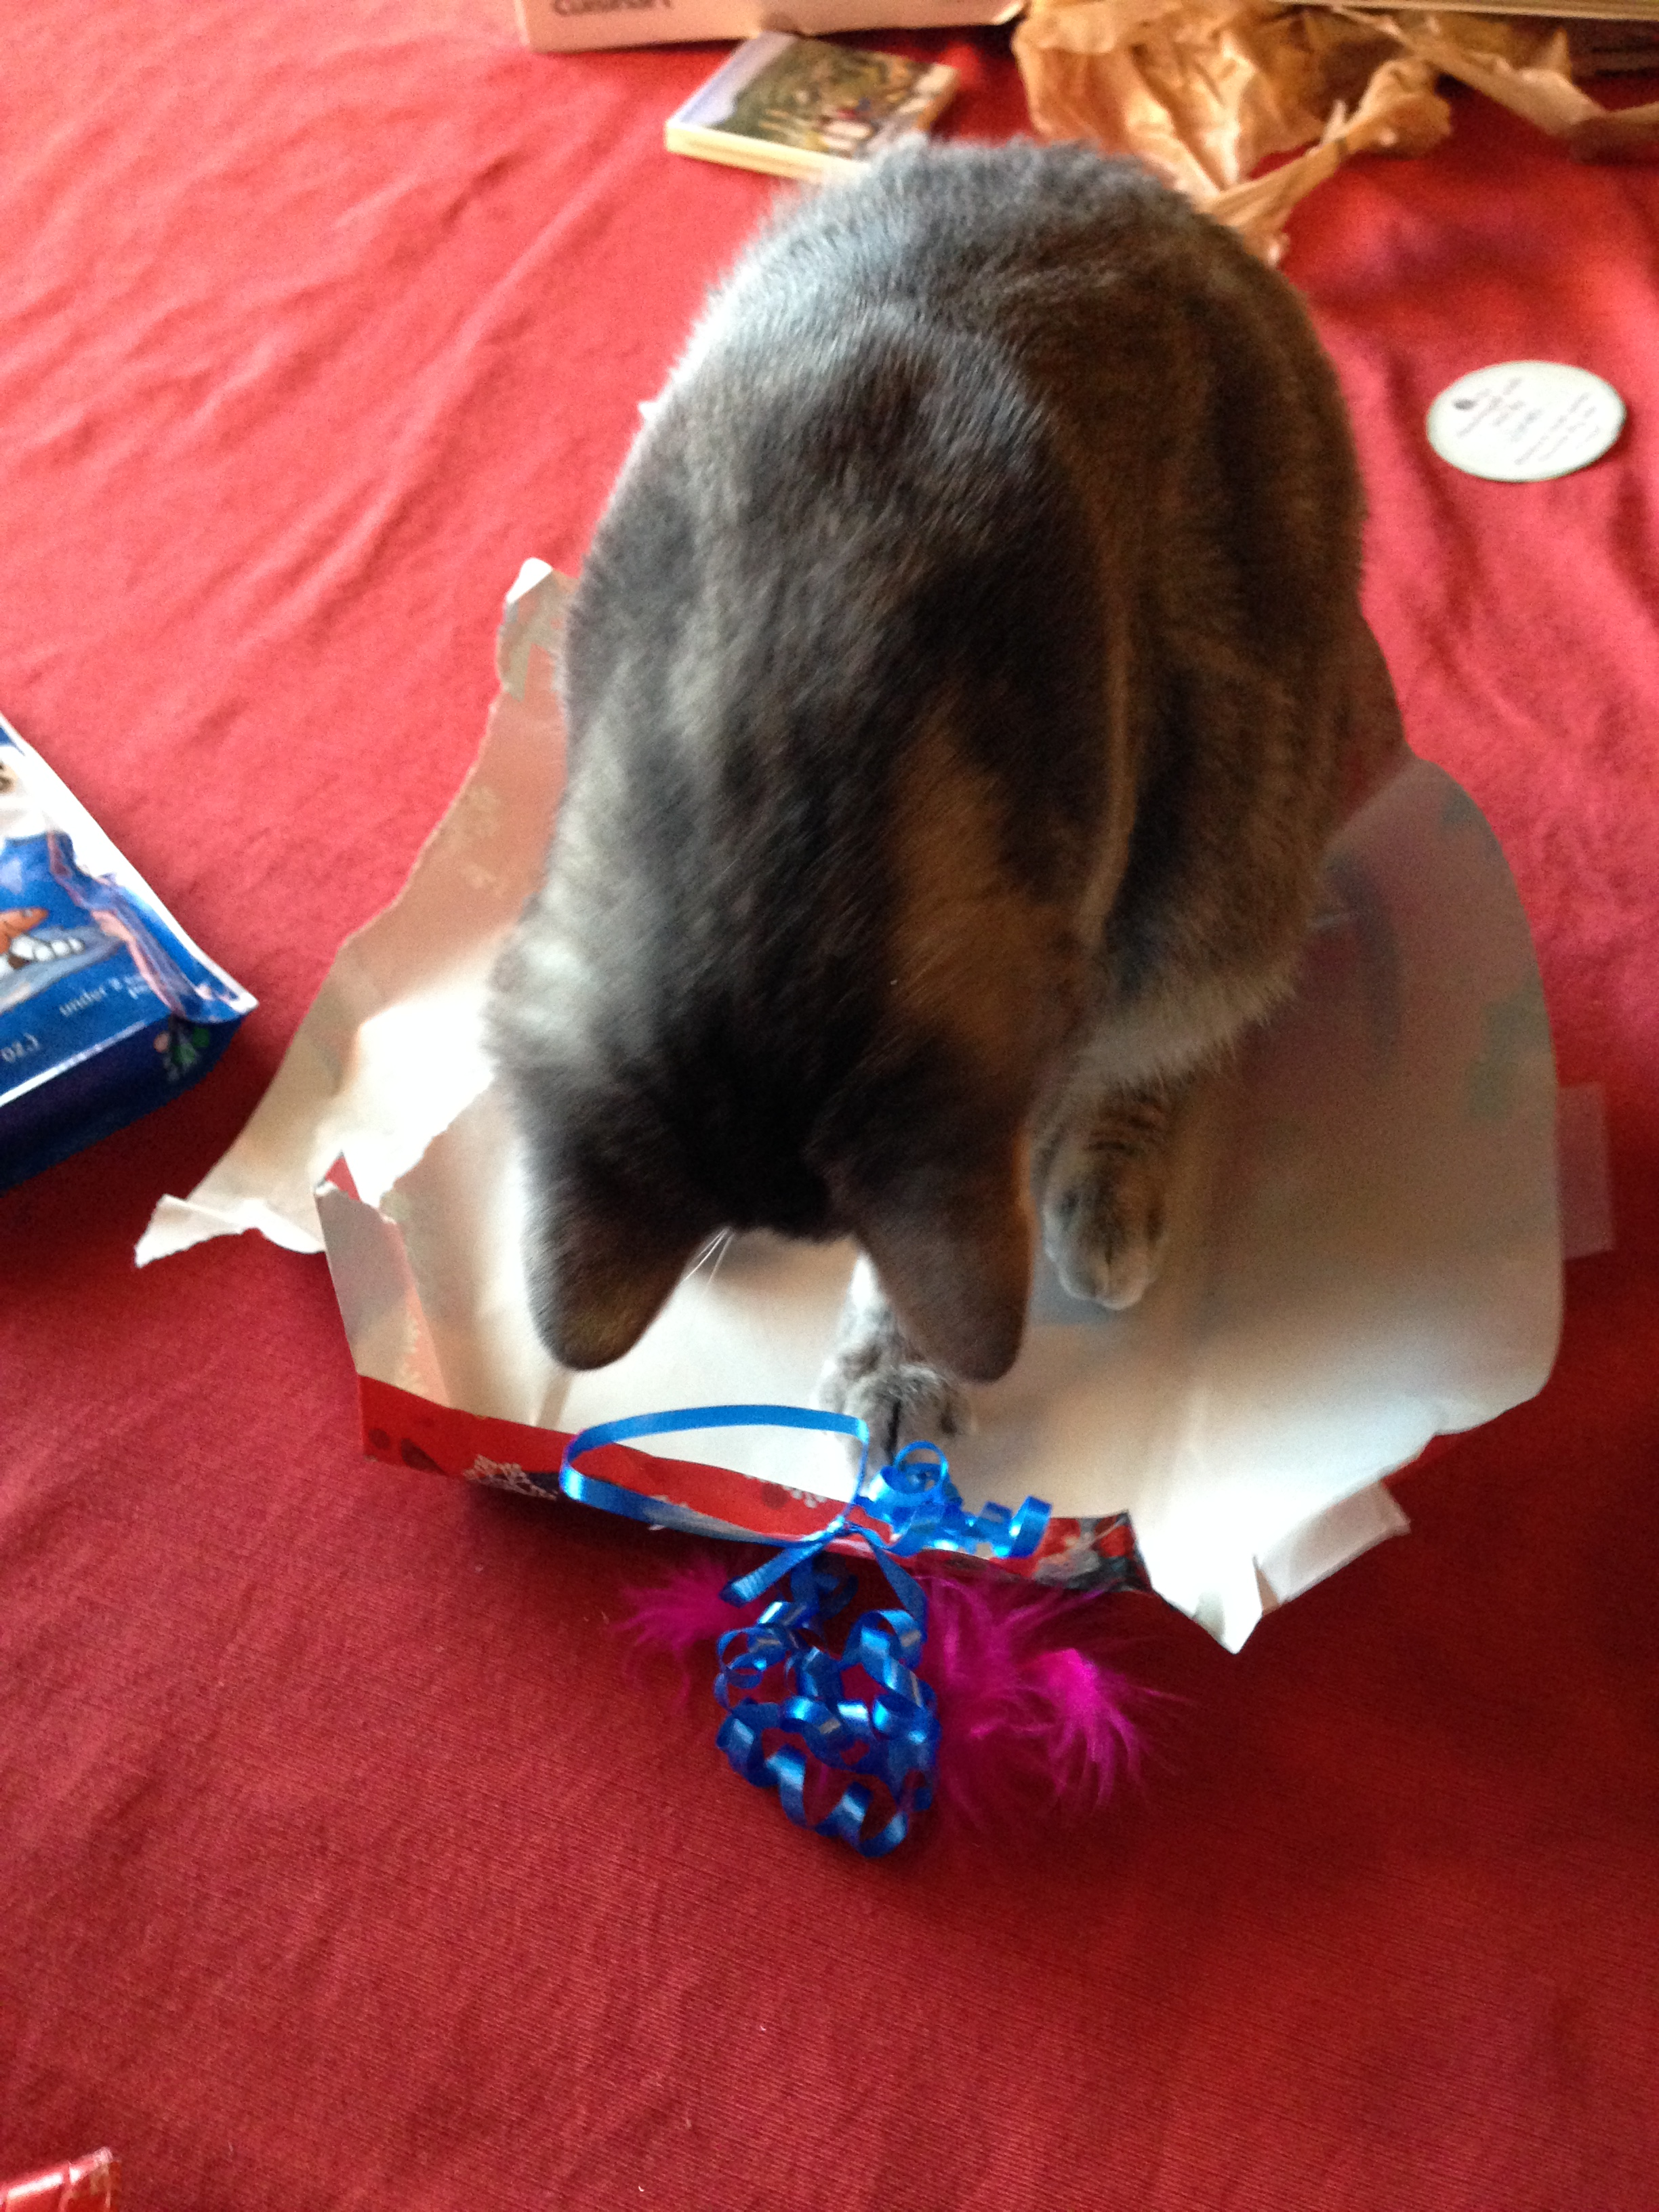 Tabby Unwraps Gifts -- (PHOTO COPYRIGHT 2014 BY JAZ PRIMO)